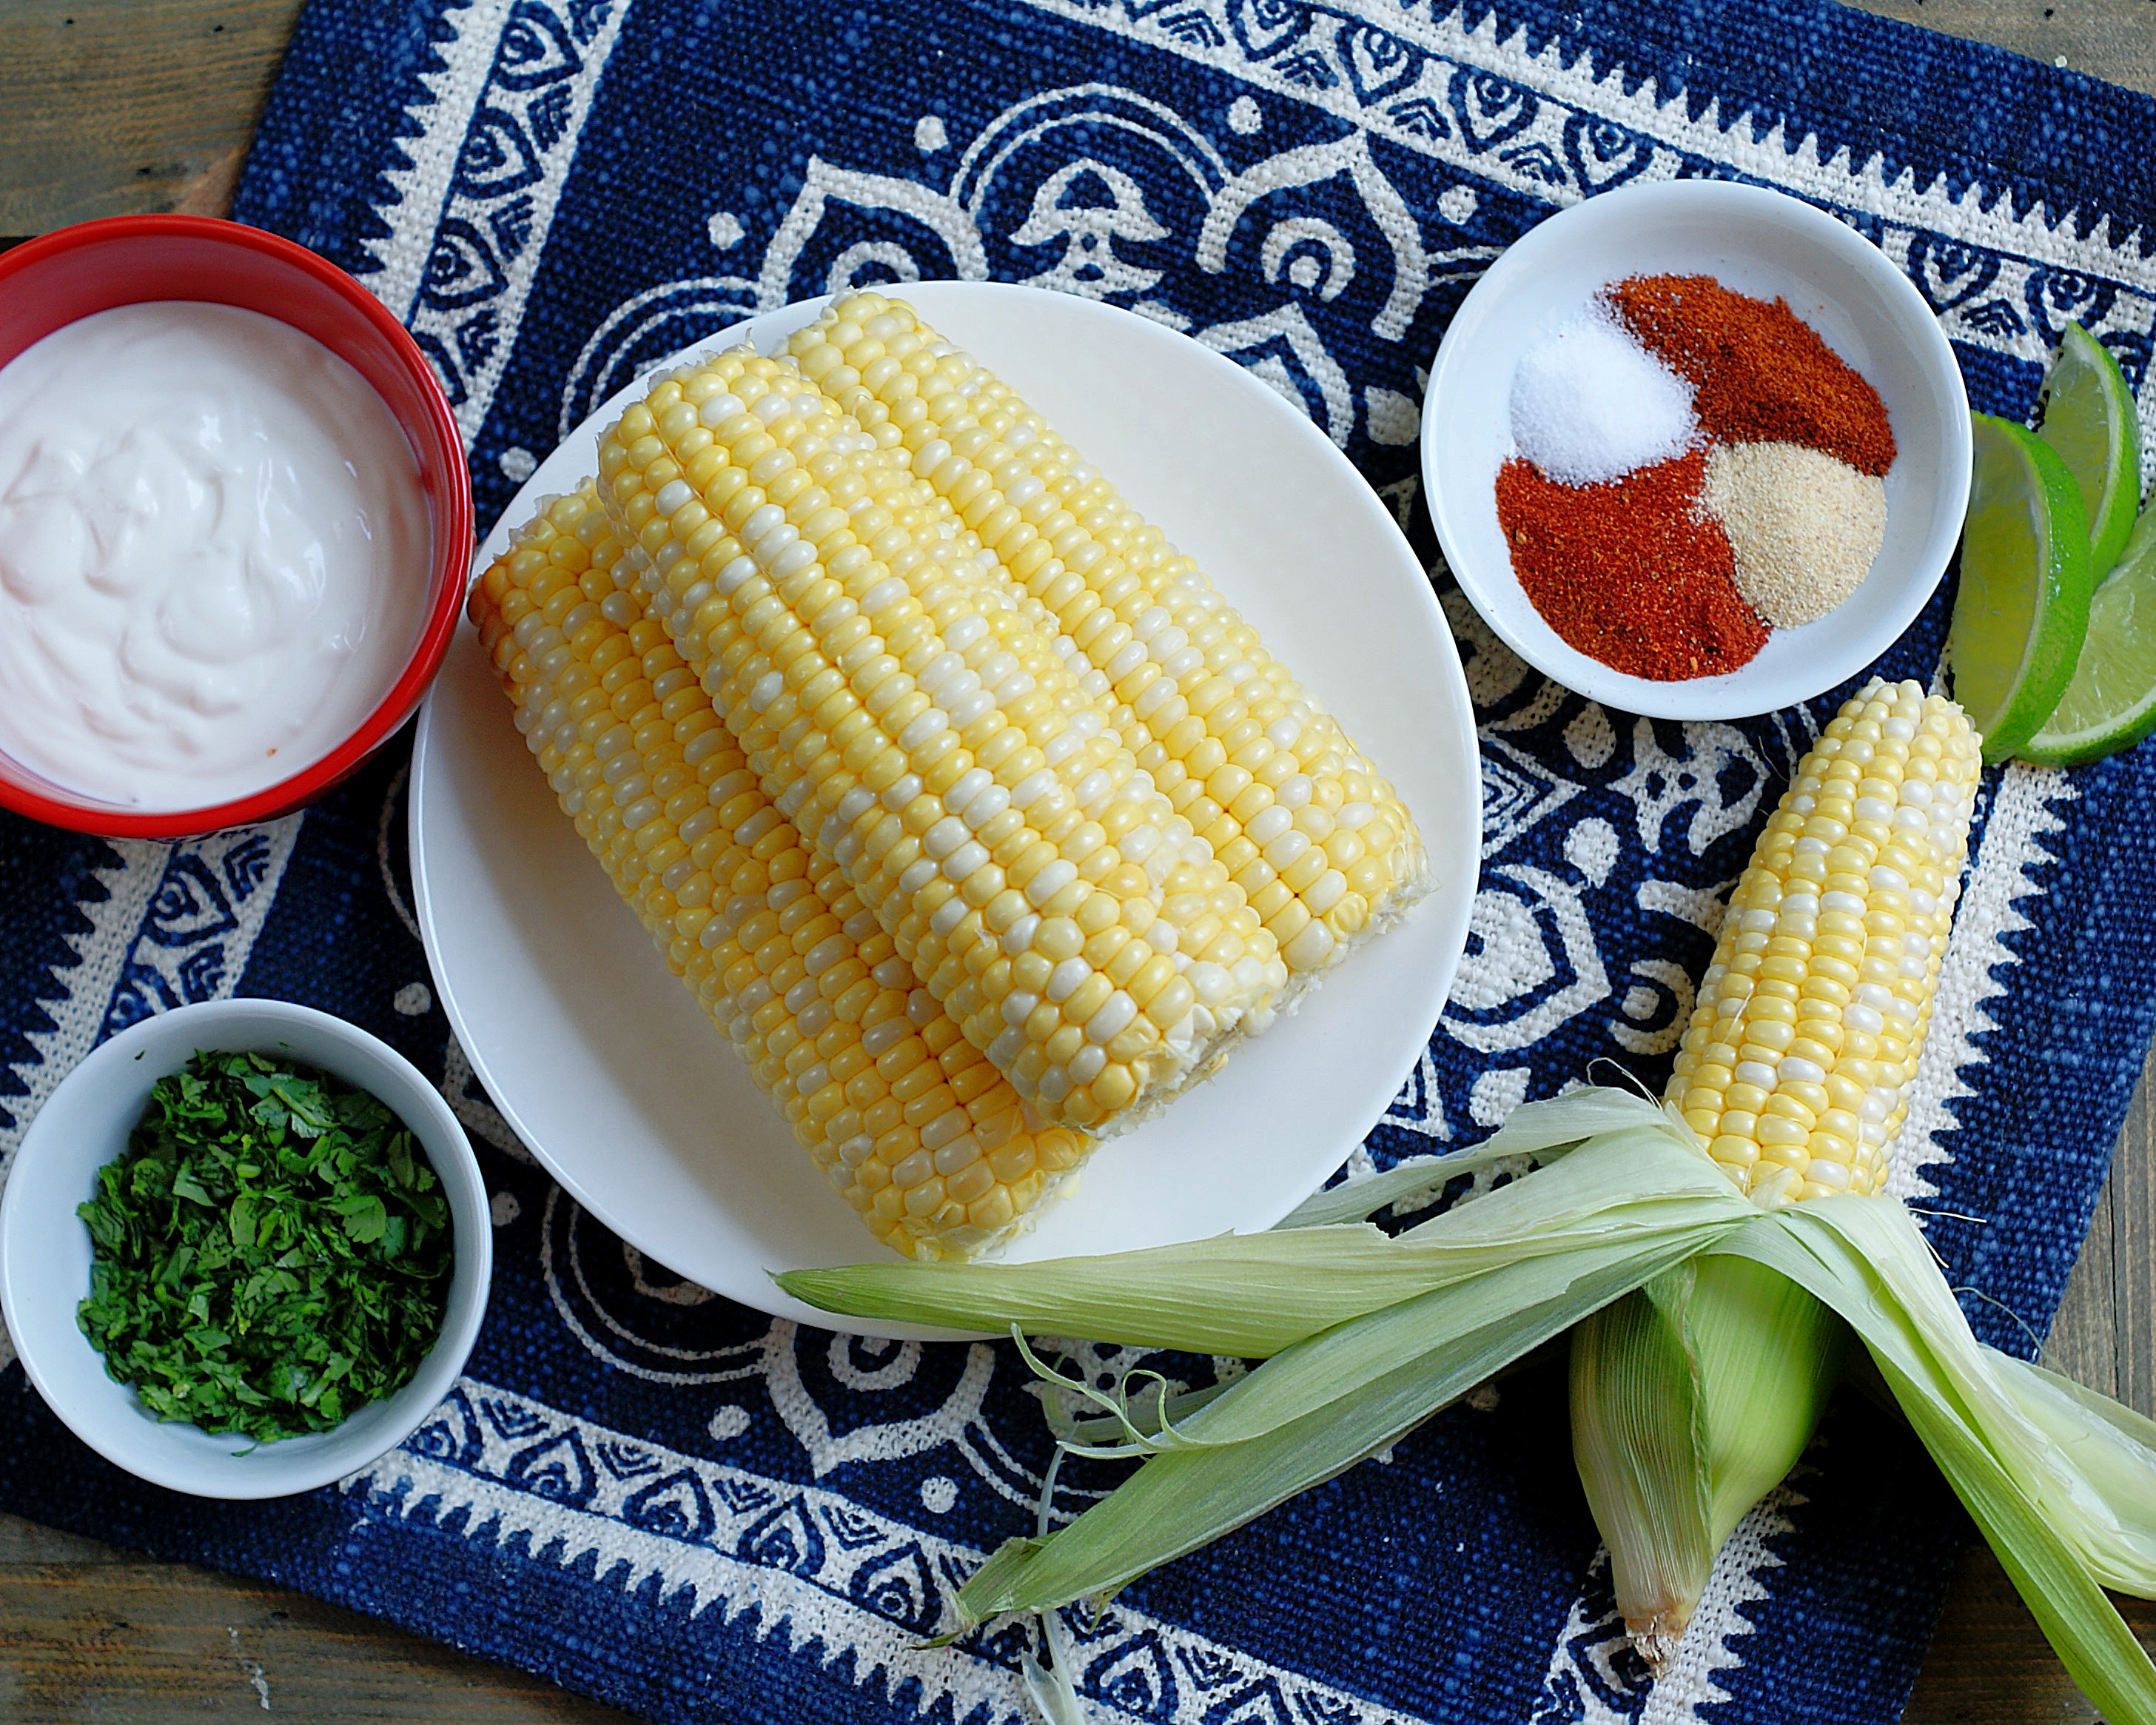 Cilantro, sour cream, mayonnaise and spices flavor Mexican Street Corn.